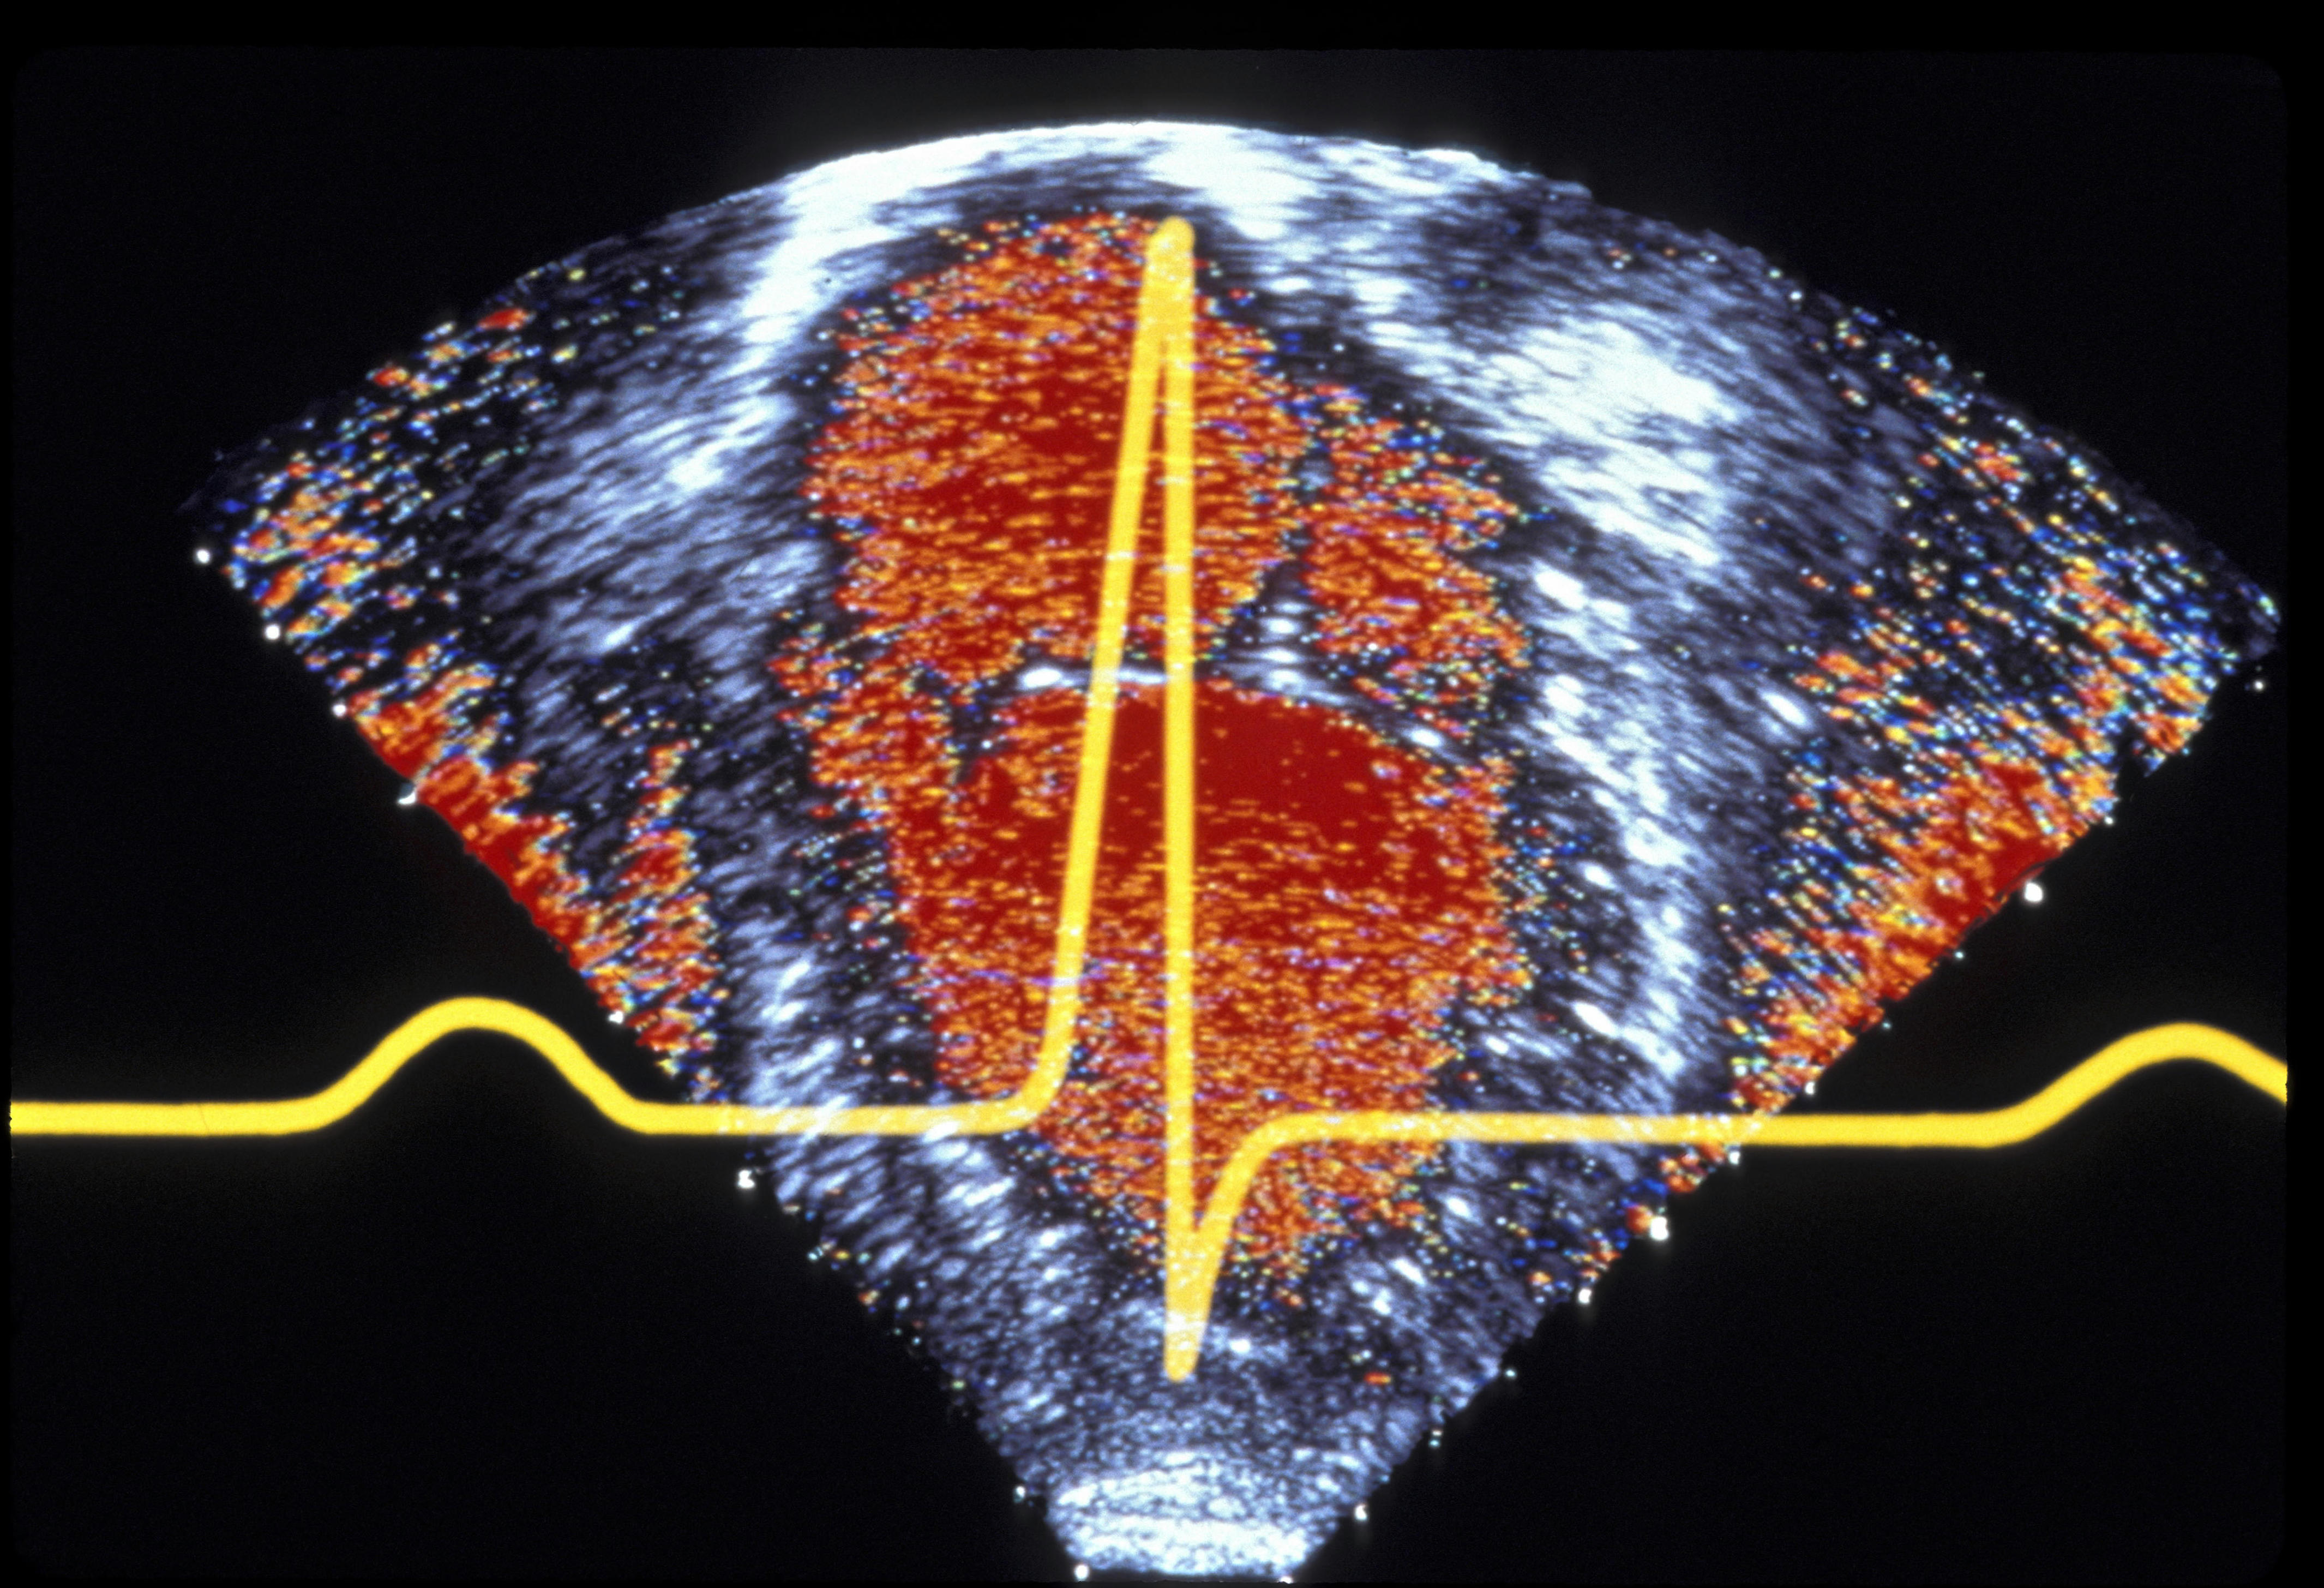 ABSTRACT OF HEART ACTIVITY AS SHOWN BY ELECTROCARDIOGRAM & ECHOCARDIOGRAM. (DOPPLER)